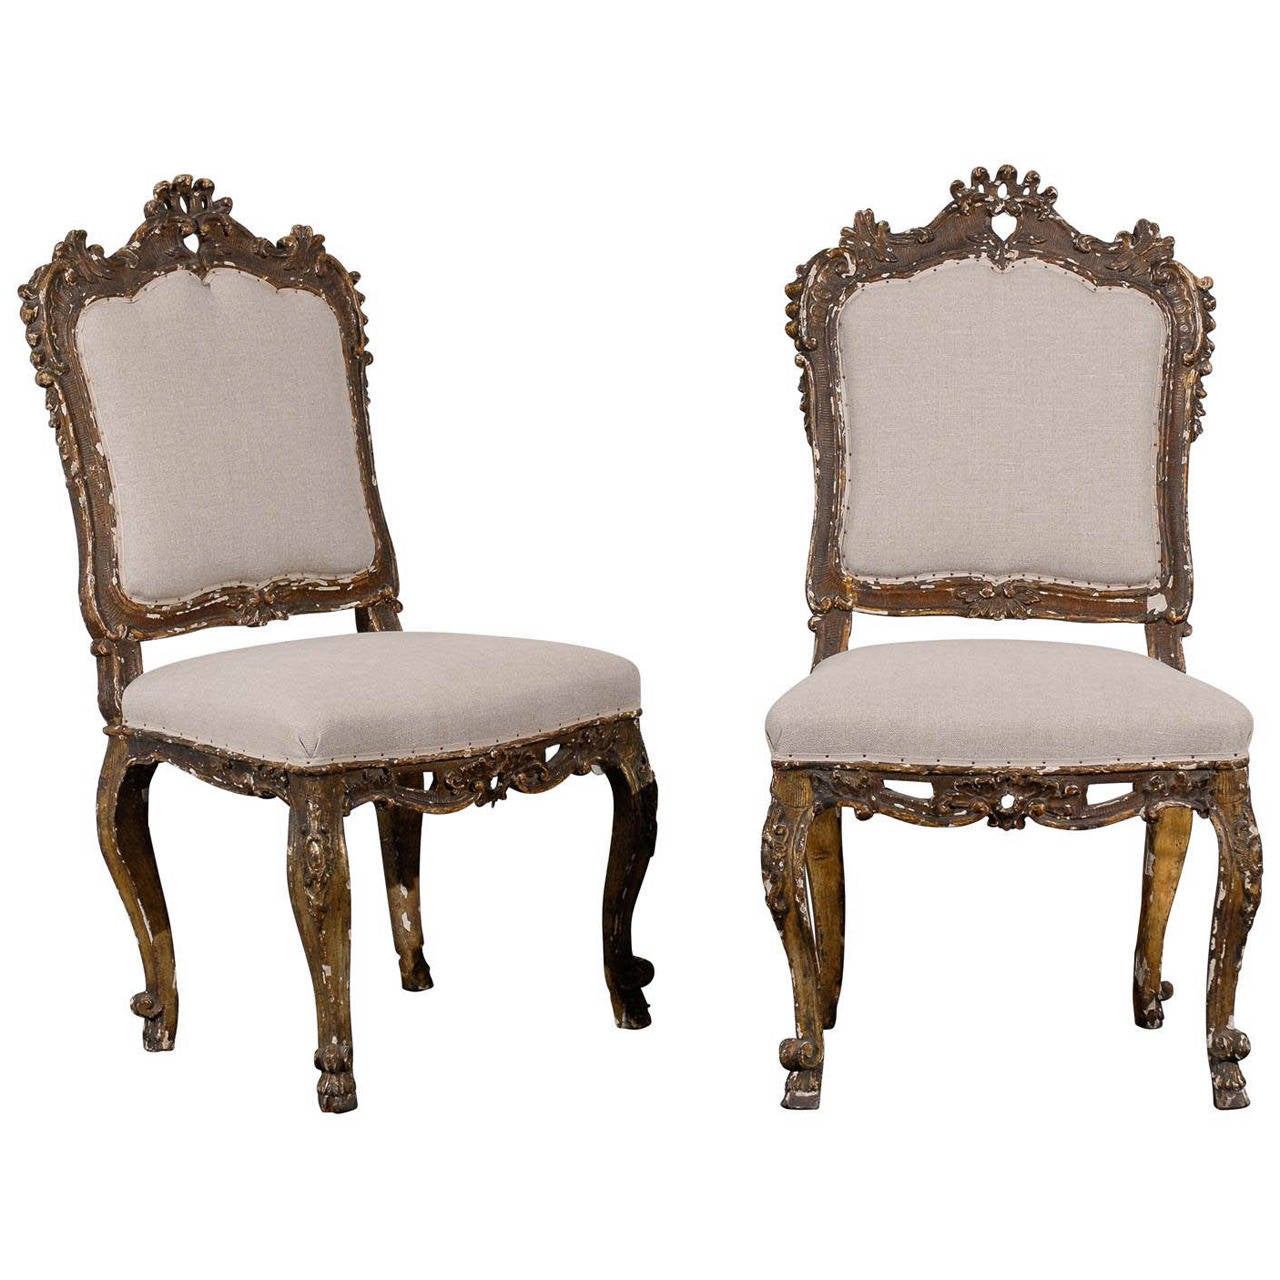 Pair of 18th Century Italian Neoclassical Style Paint